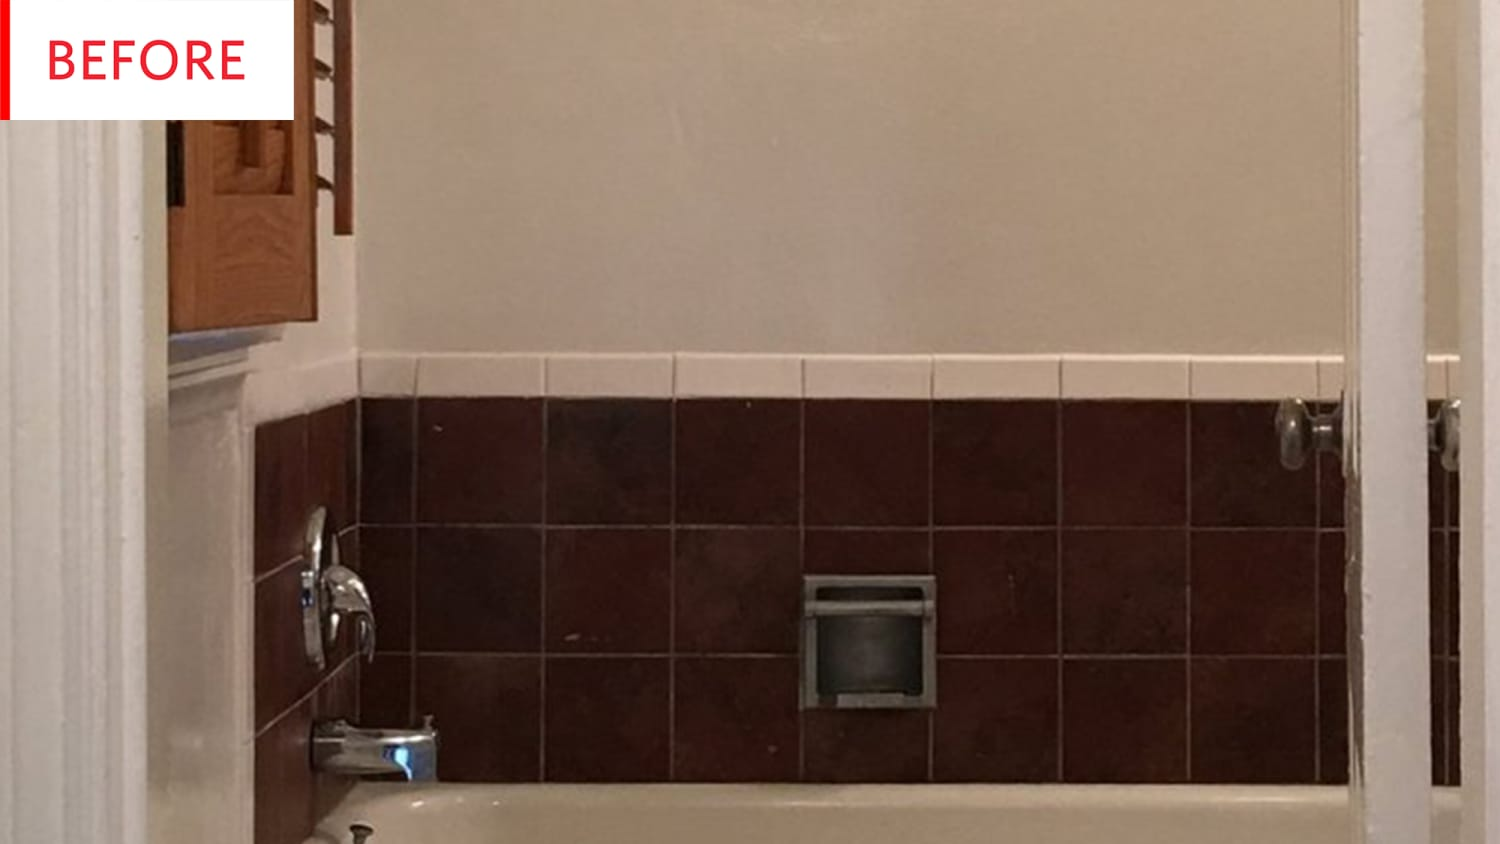 Vinyl Peel and Stick Tile Decals - Bathroom Remodel | Apartment Therapy